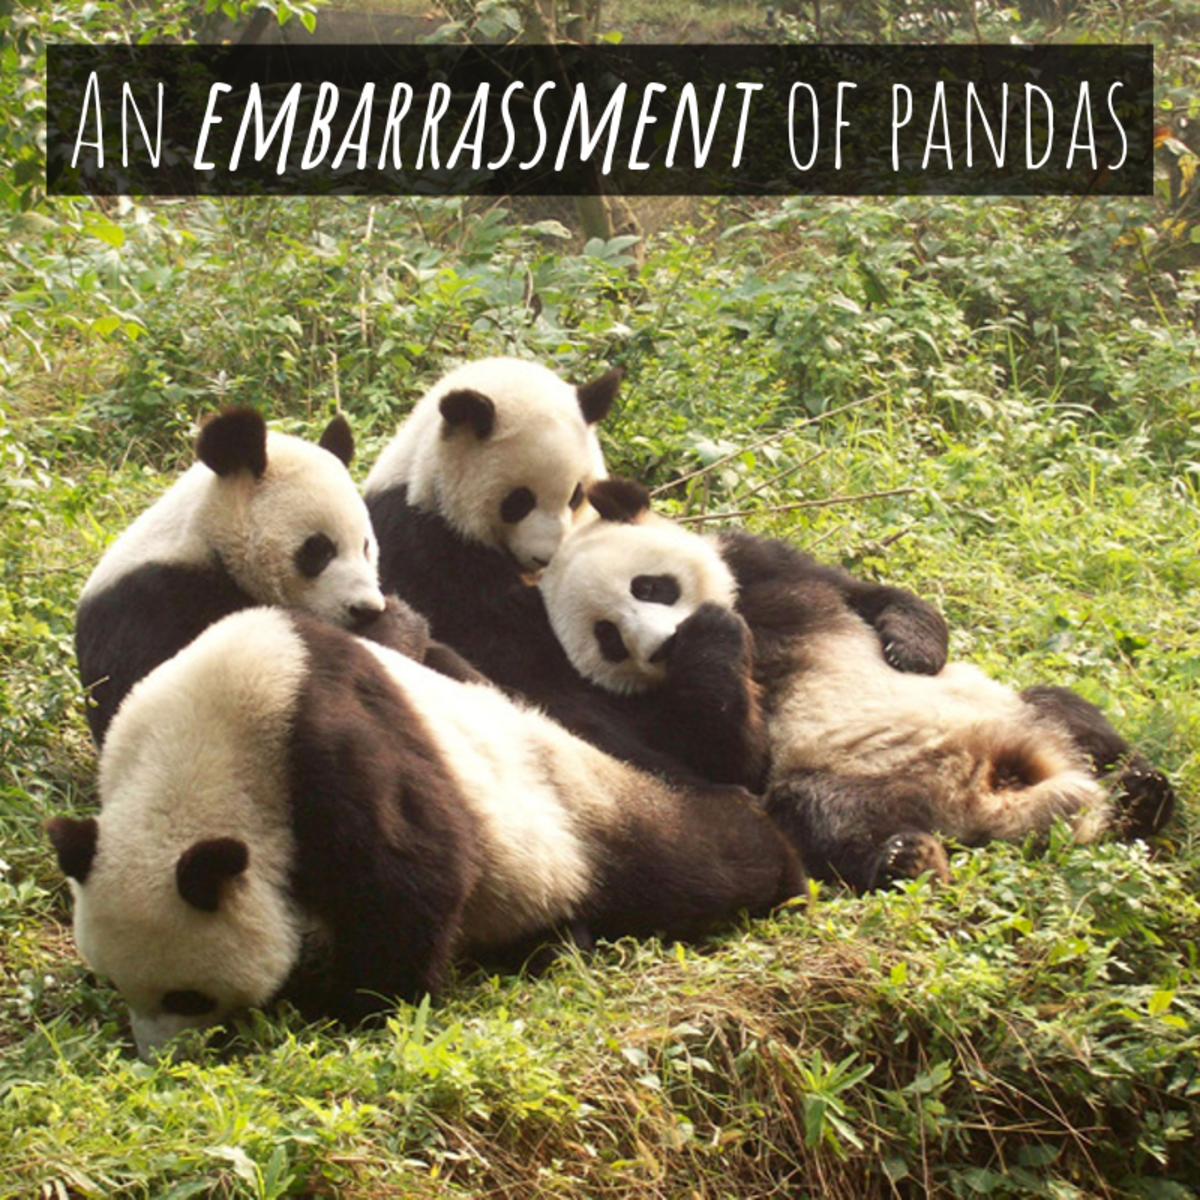 "A group of pandas is referred to as ""an embarrassment."""